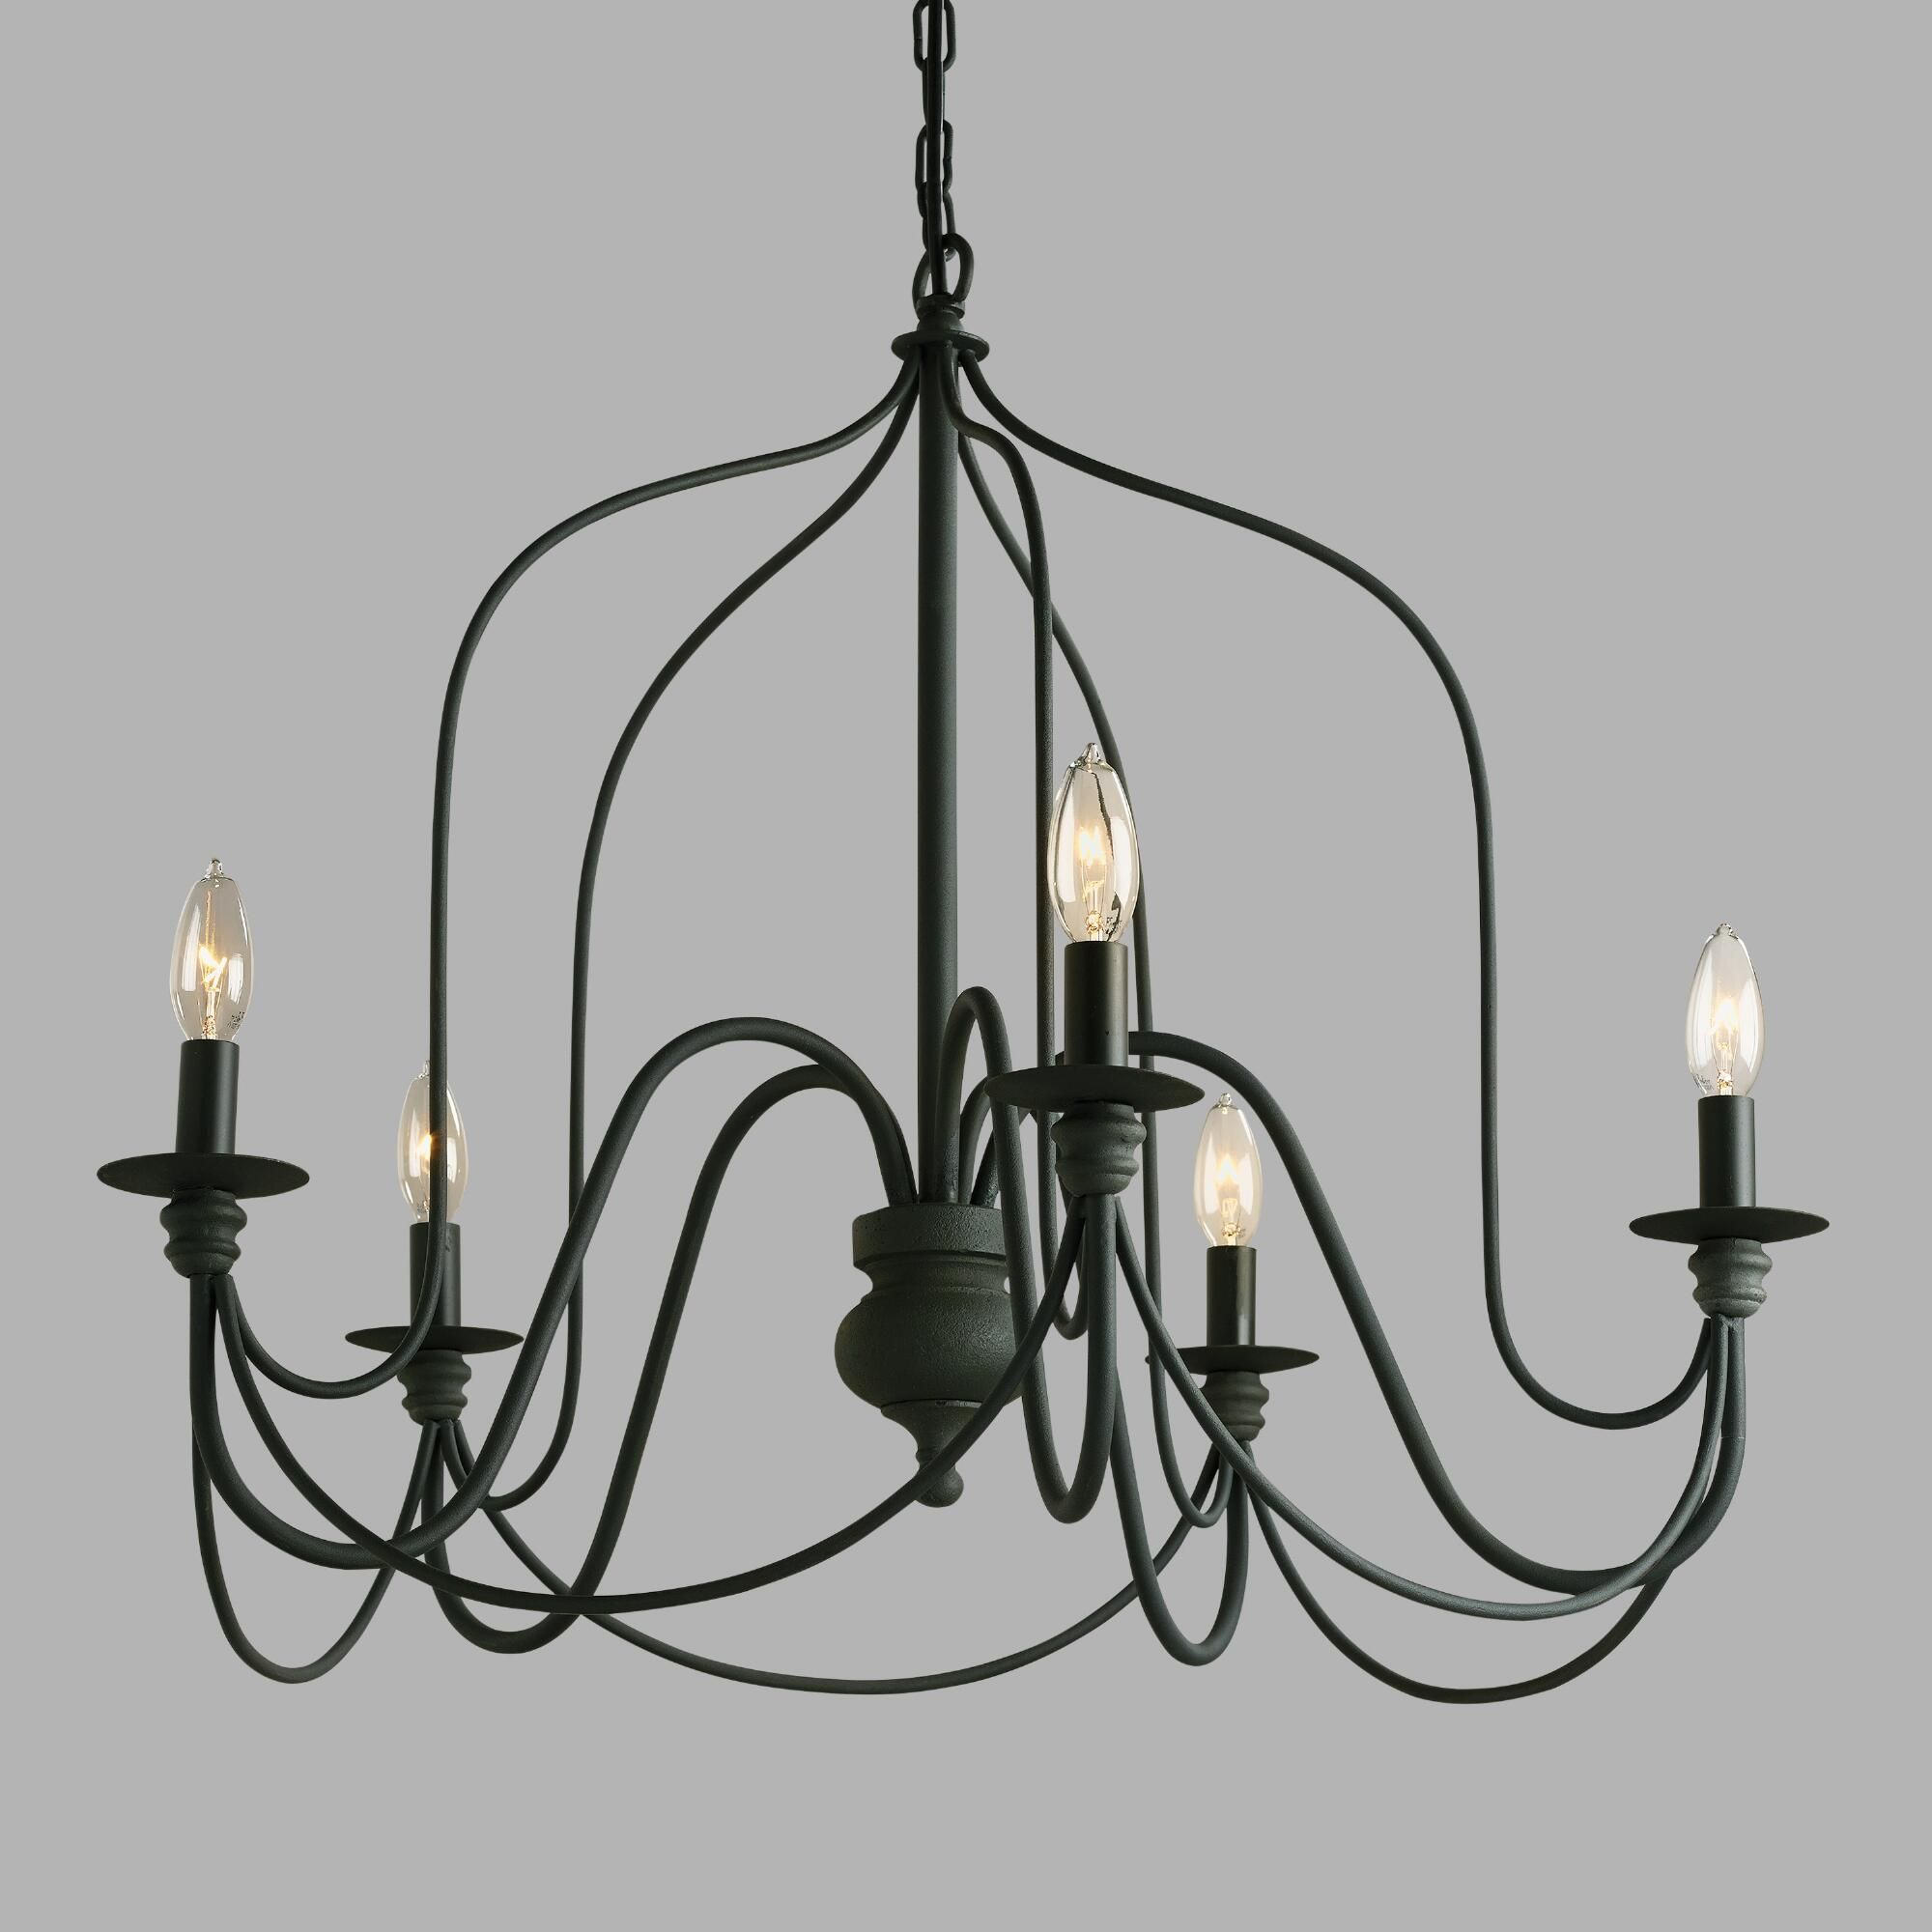 Our exclusive Rustic Wire Chandelier features a slender silhouette